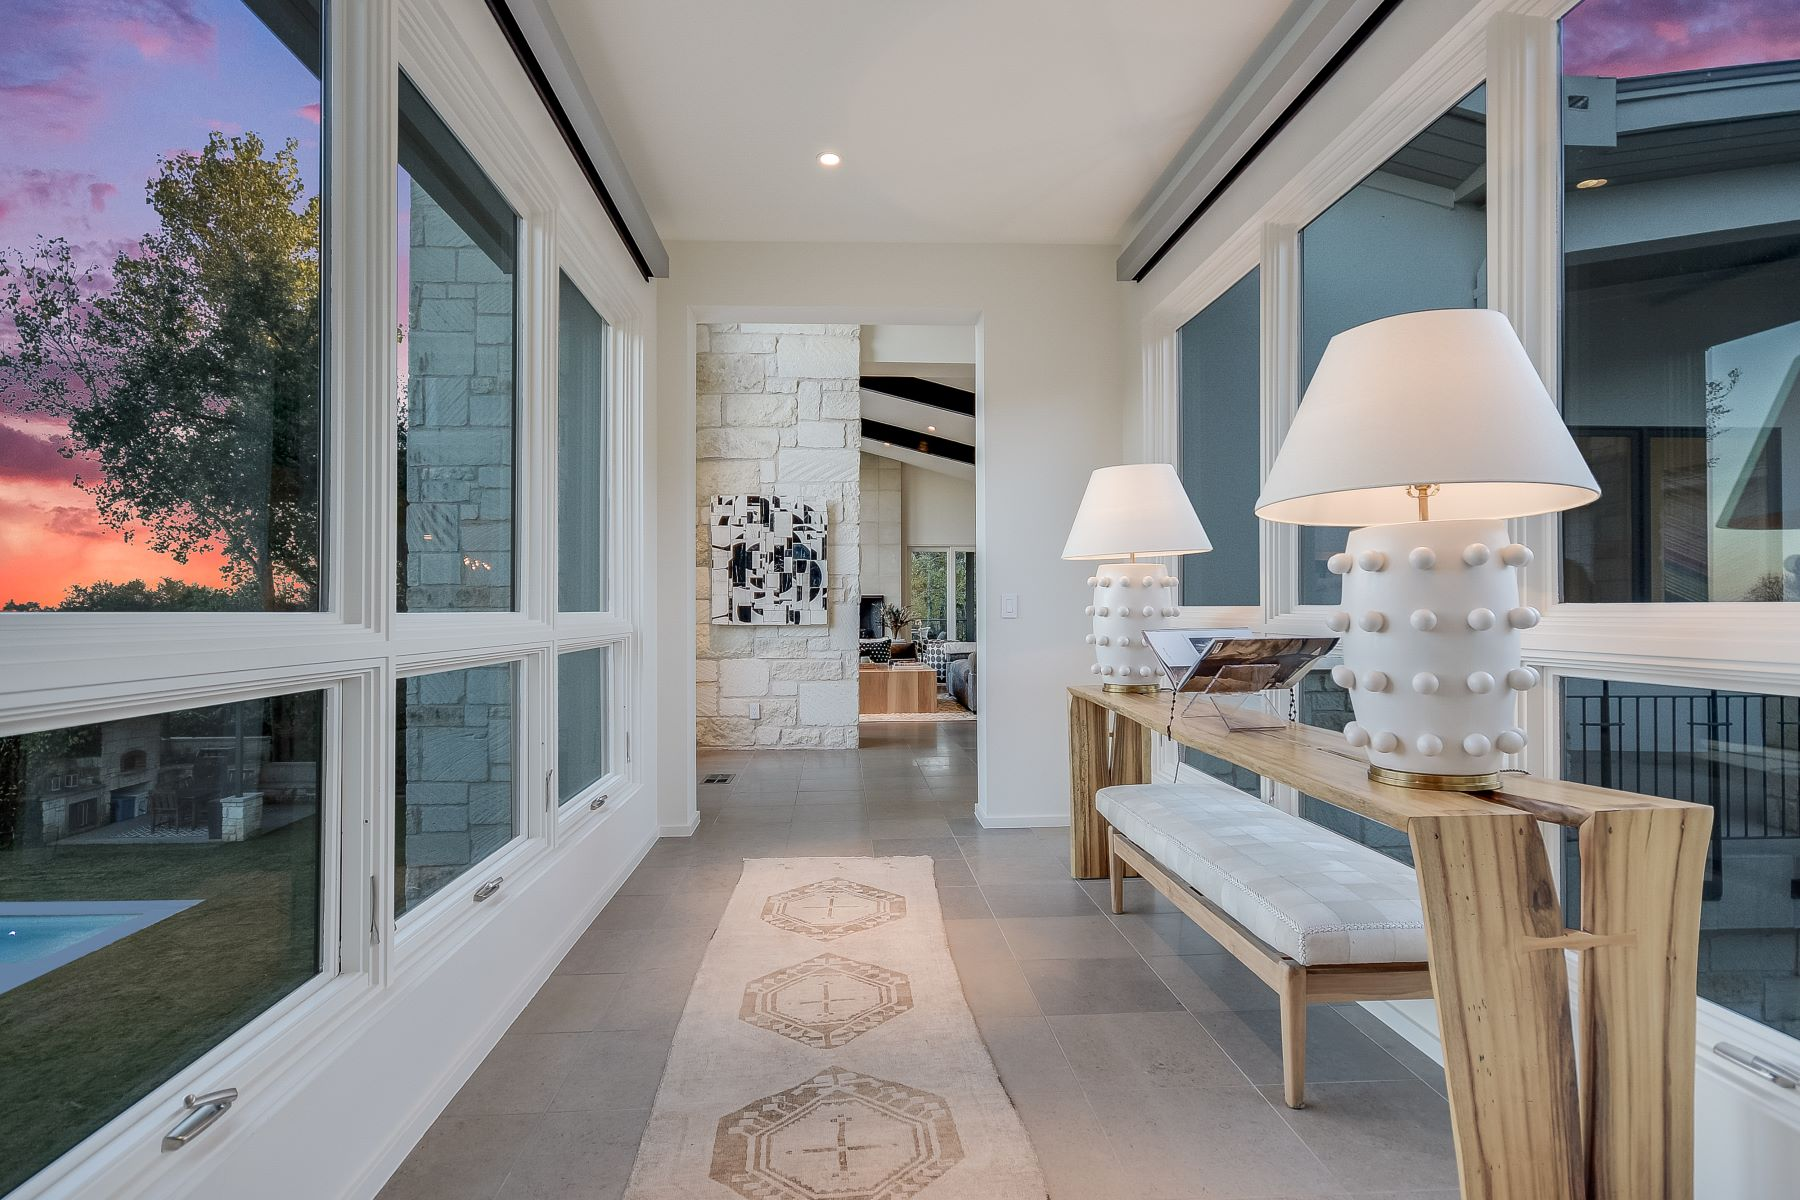 Additional photo for property listing at Stunning Contemporary on 1.63 Flat Acres w/ City Views in Eanes 102 Skyline Drive Austin, Texas 78746 United States